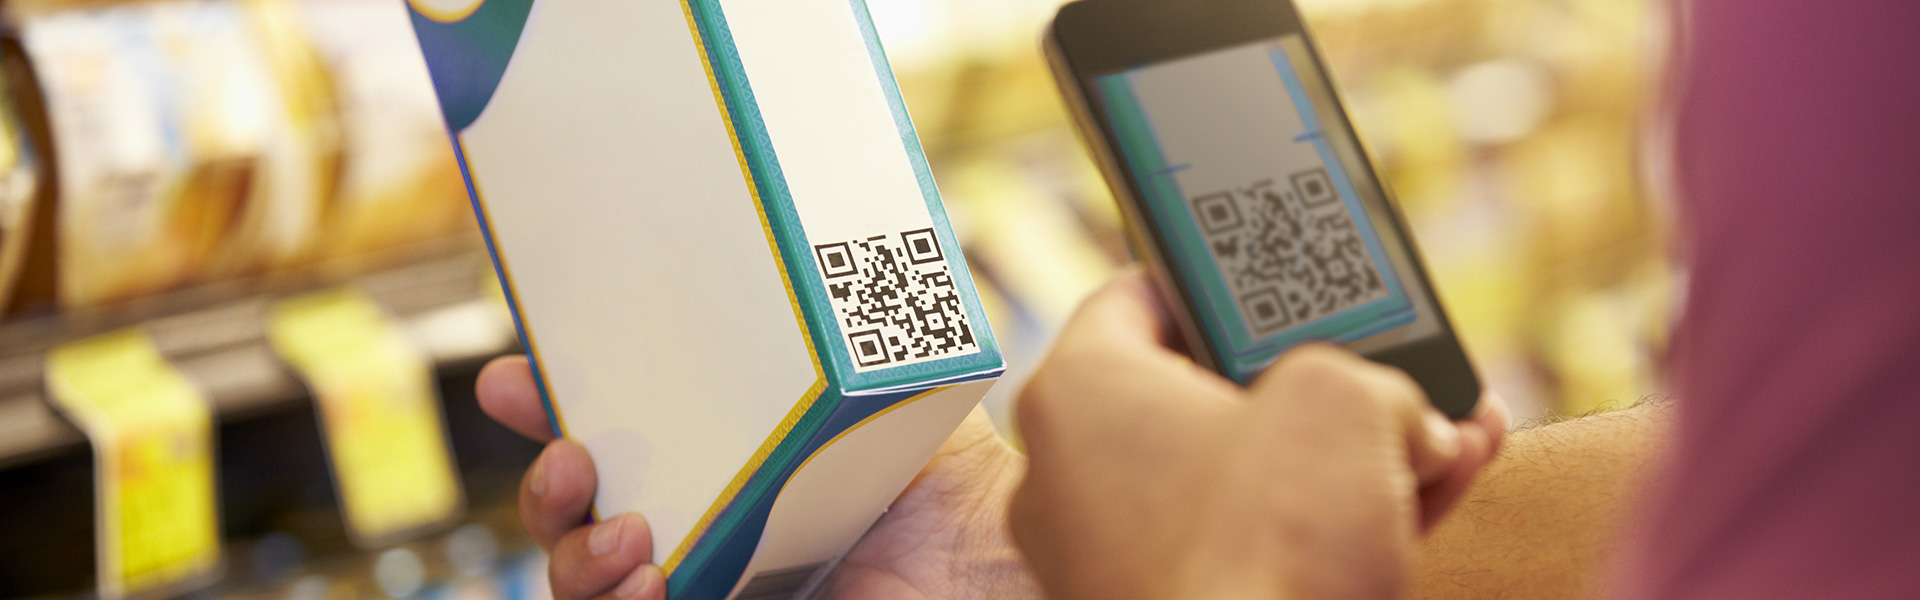 Scanning a packaging barcode to detect food fraud